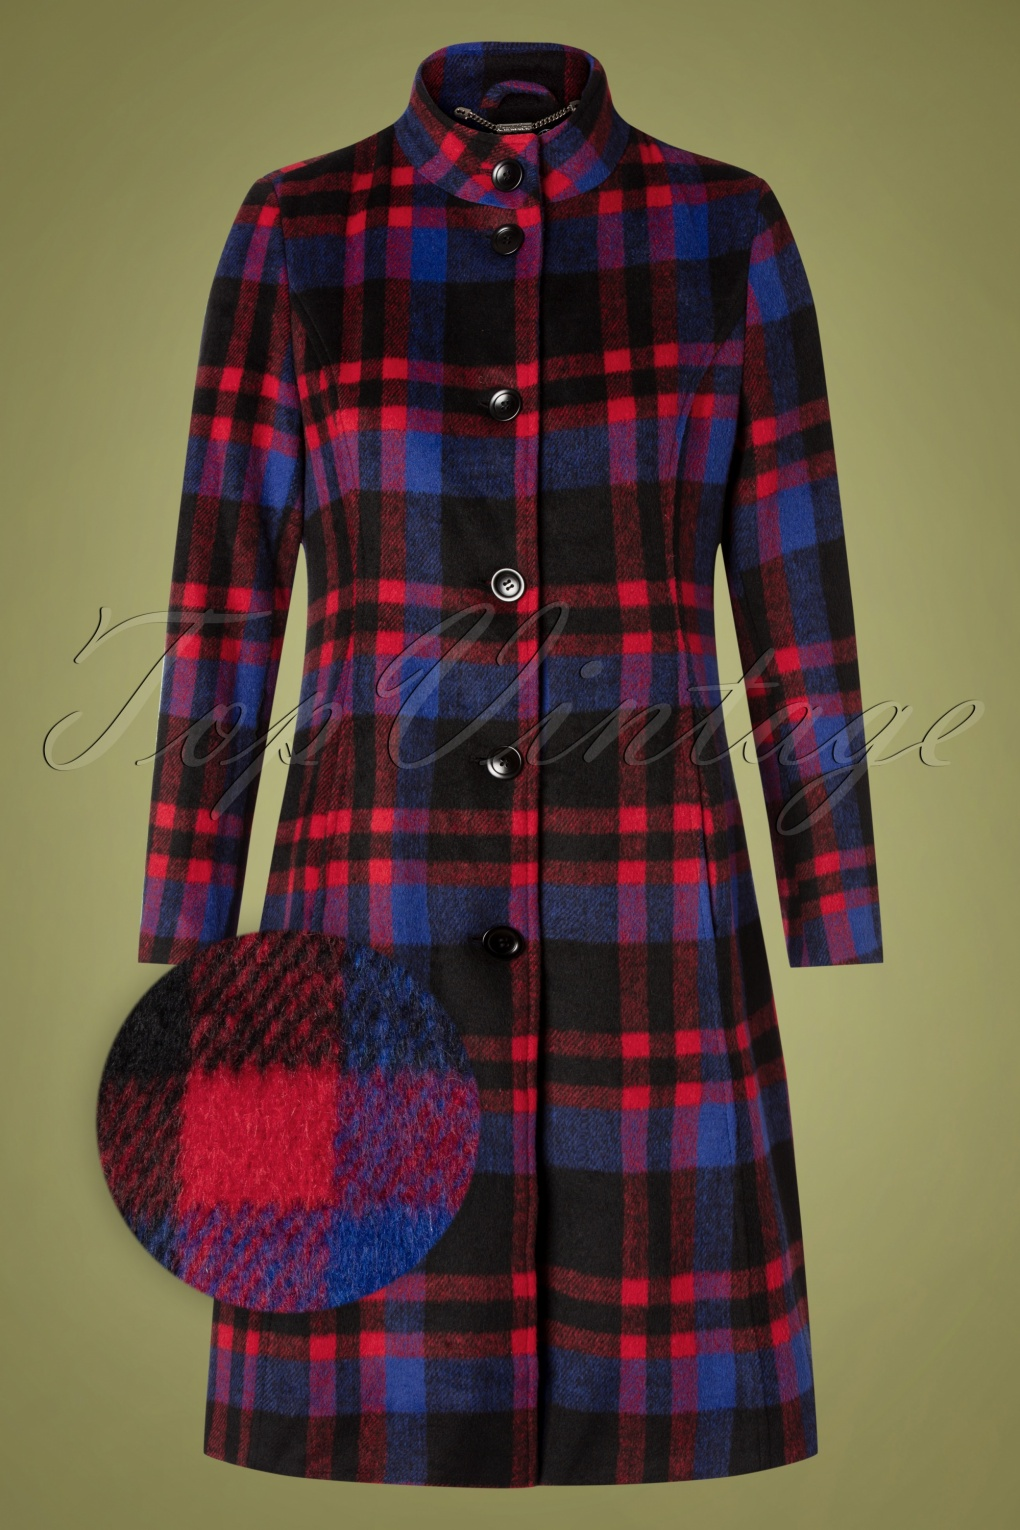 Vintage Coats & Jackets | Retro Coats and Jackets 60s Shannon Check Coat in Blue and Red £83.30 AT vintagedancer.com